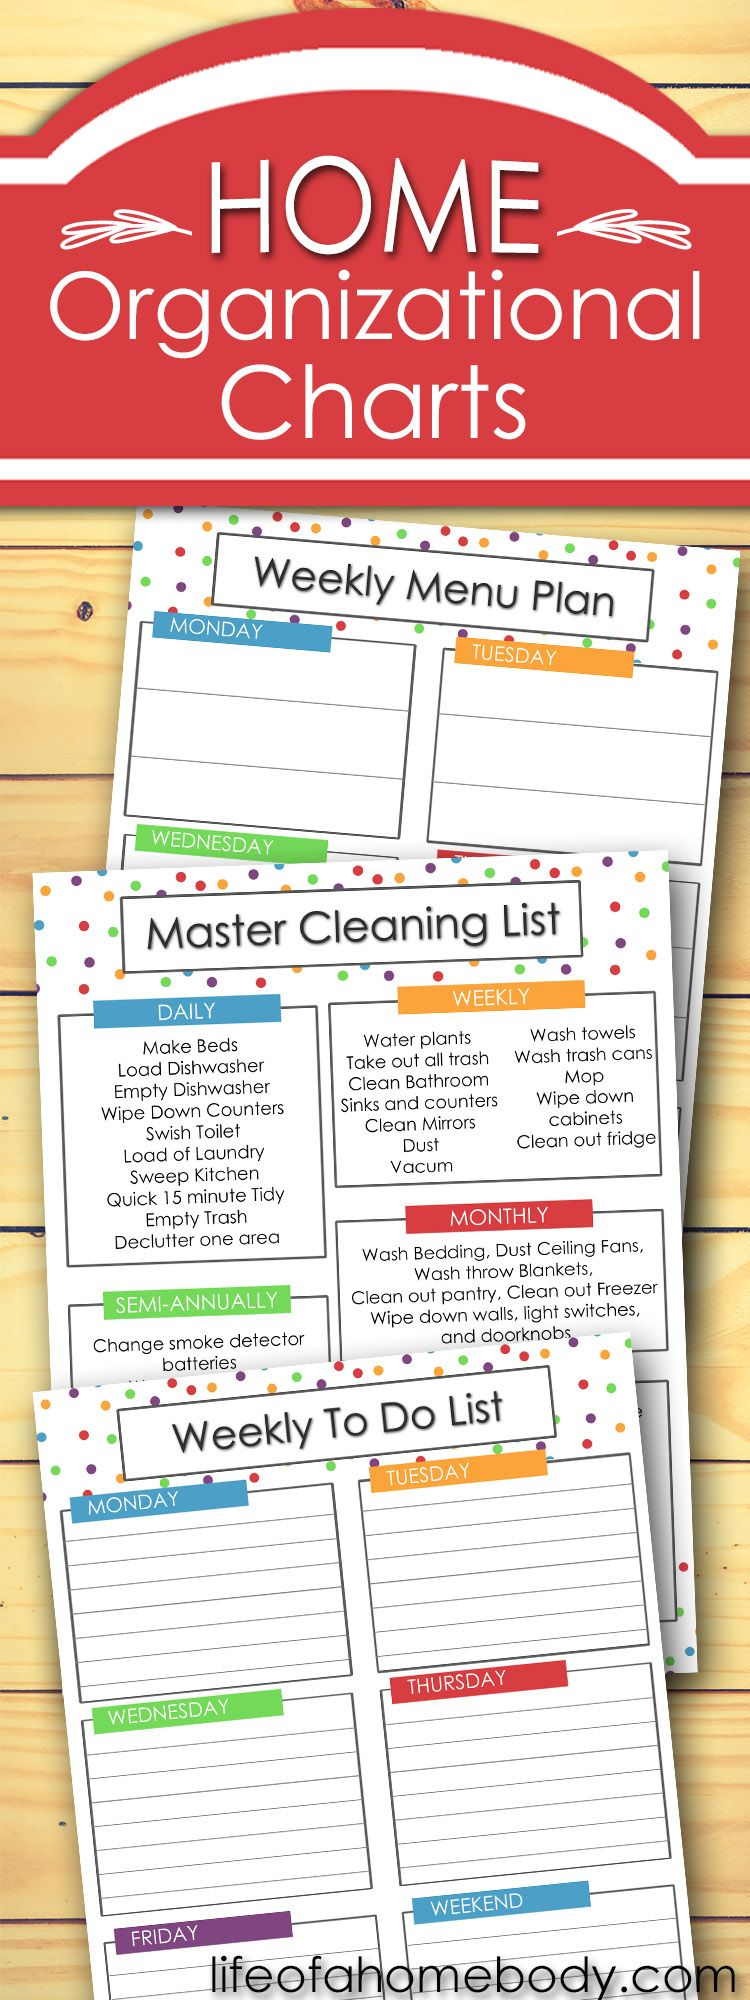 Get Your Free Weekly Planner List To Help You Plan Your Week Weekly Planner Free Planner Home Management Binder